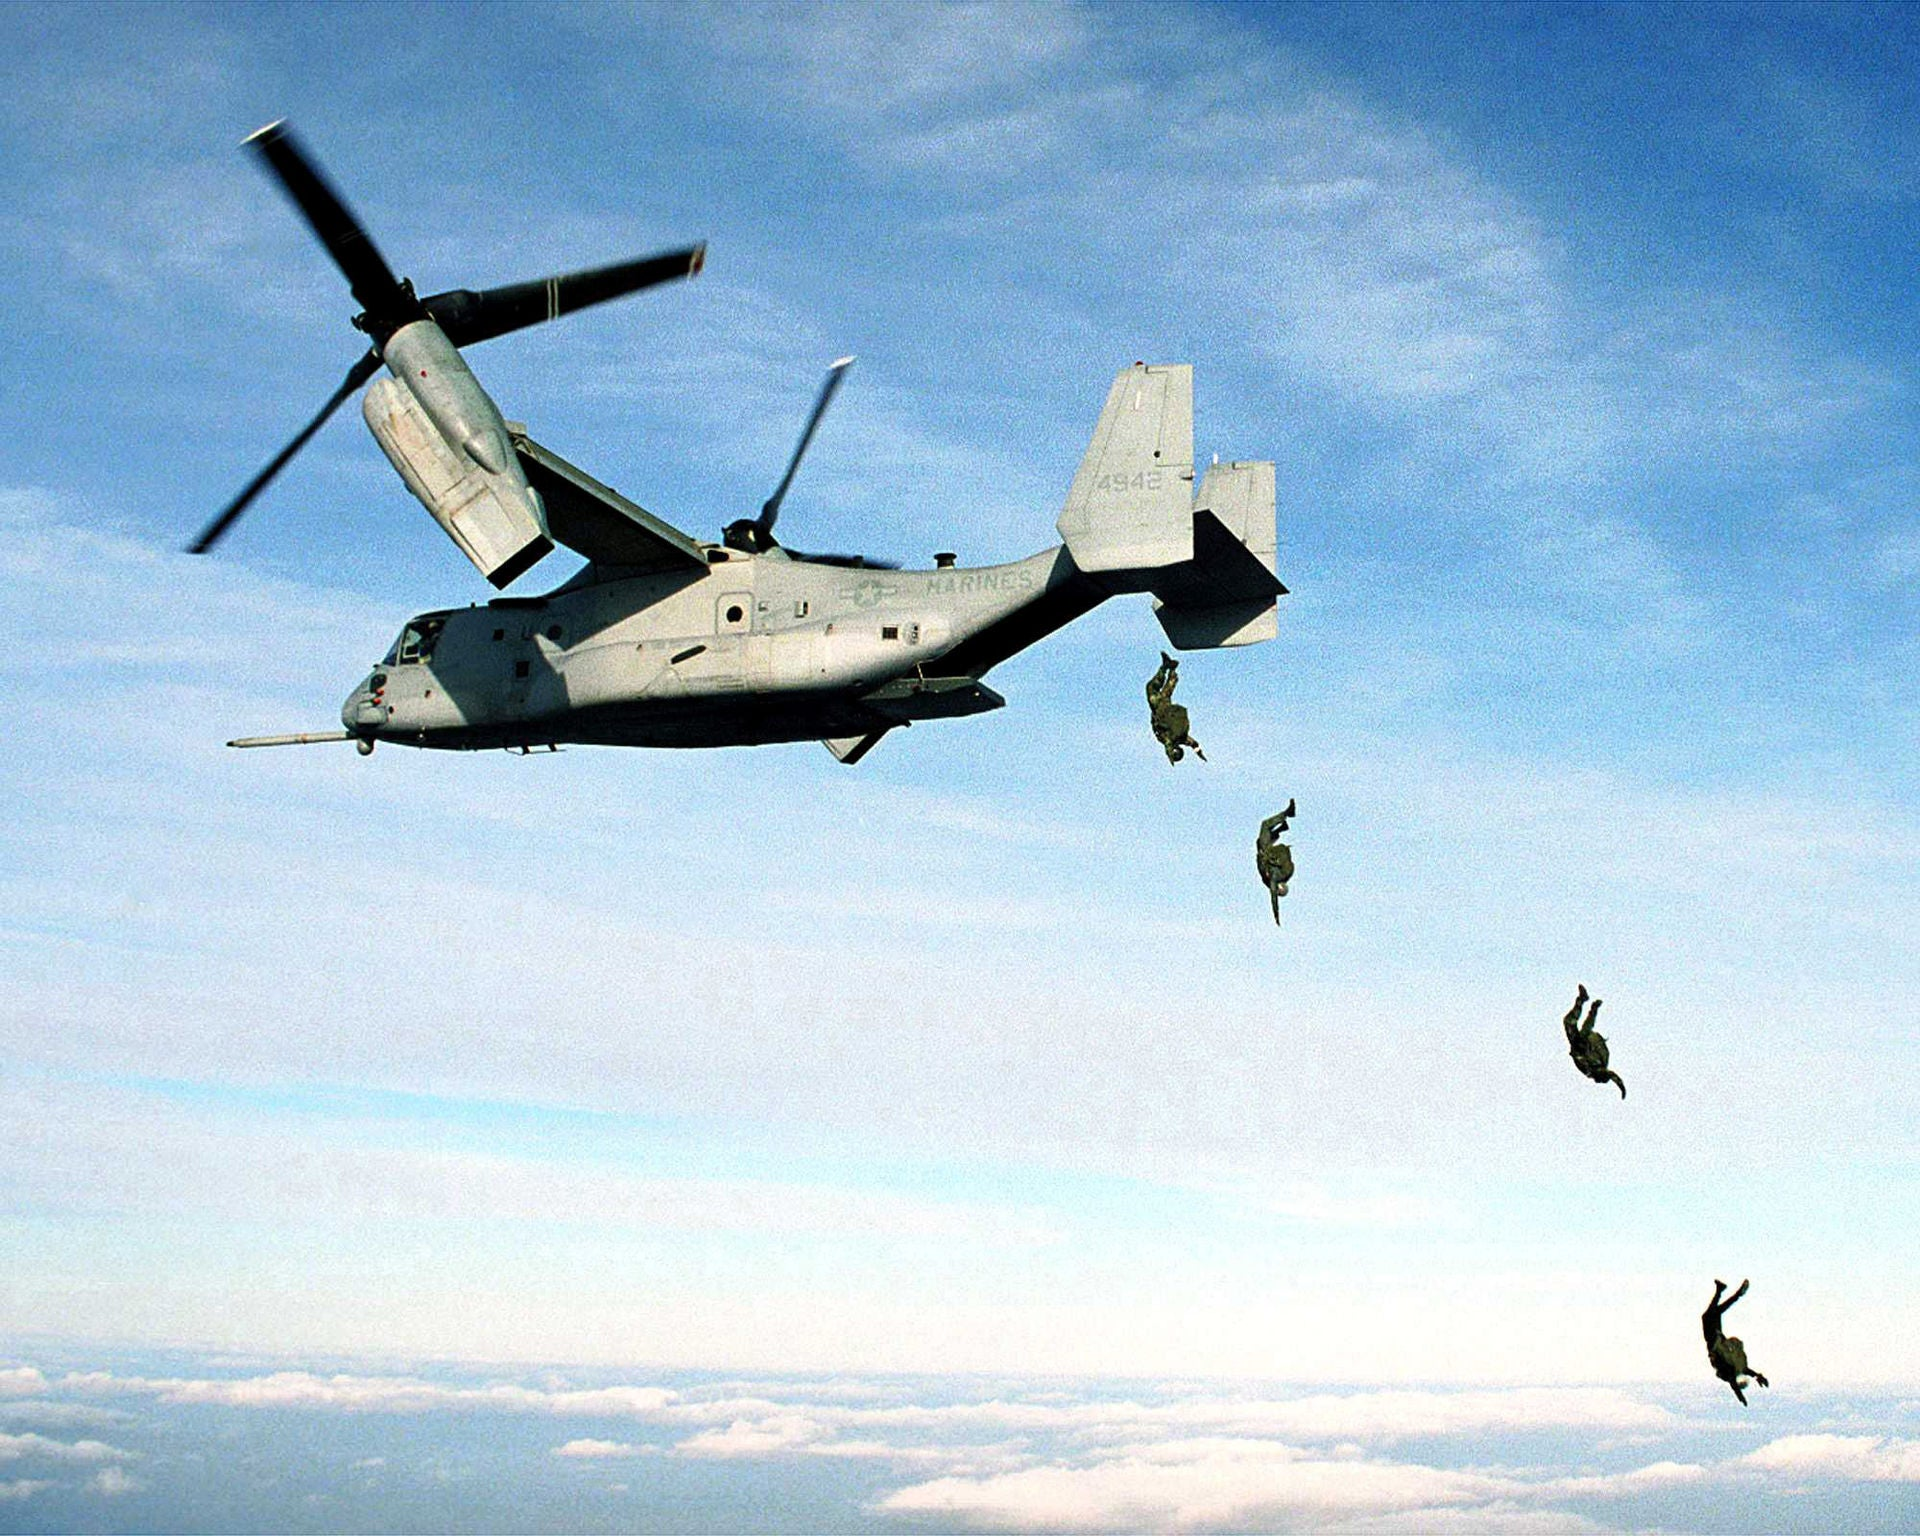 The interior of the V-22 Osprey could have been used in Aliens